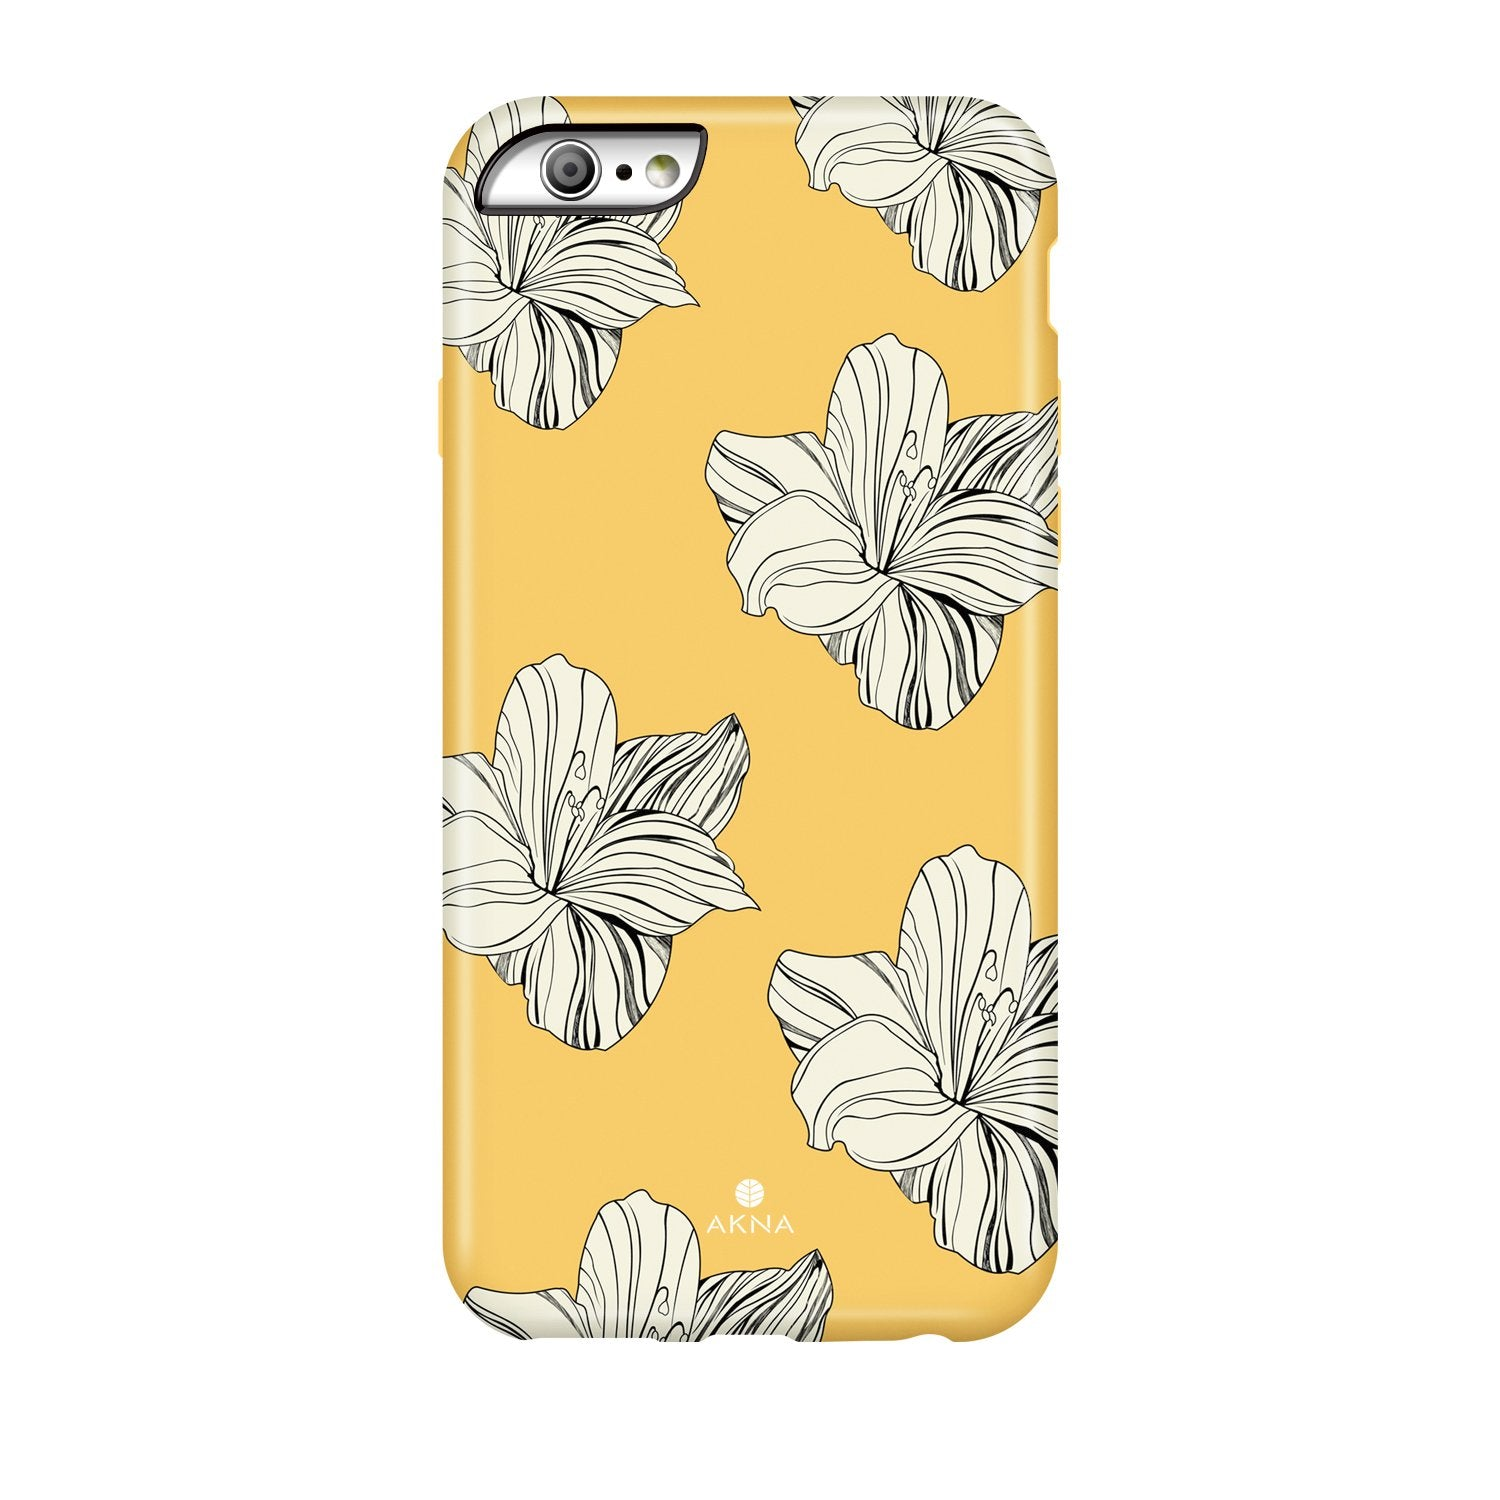 Retro Yellow Floral(#216)